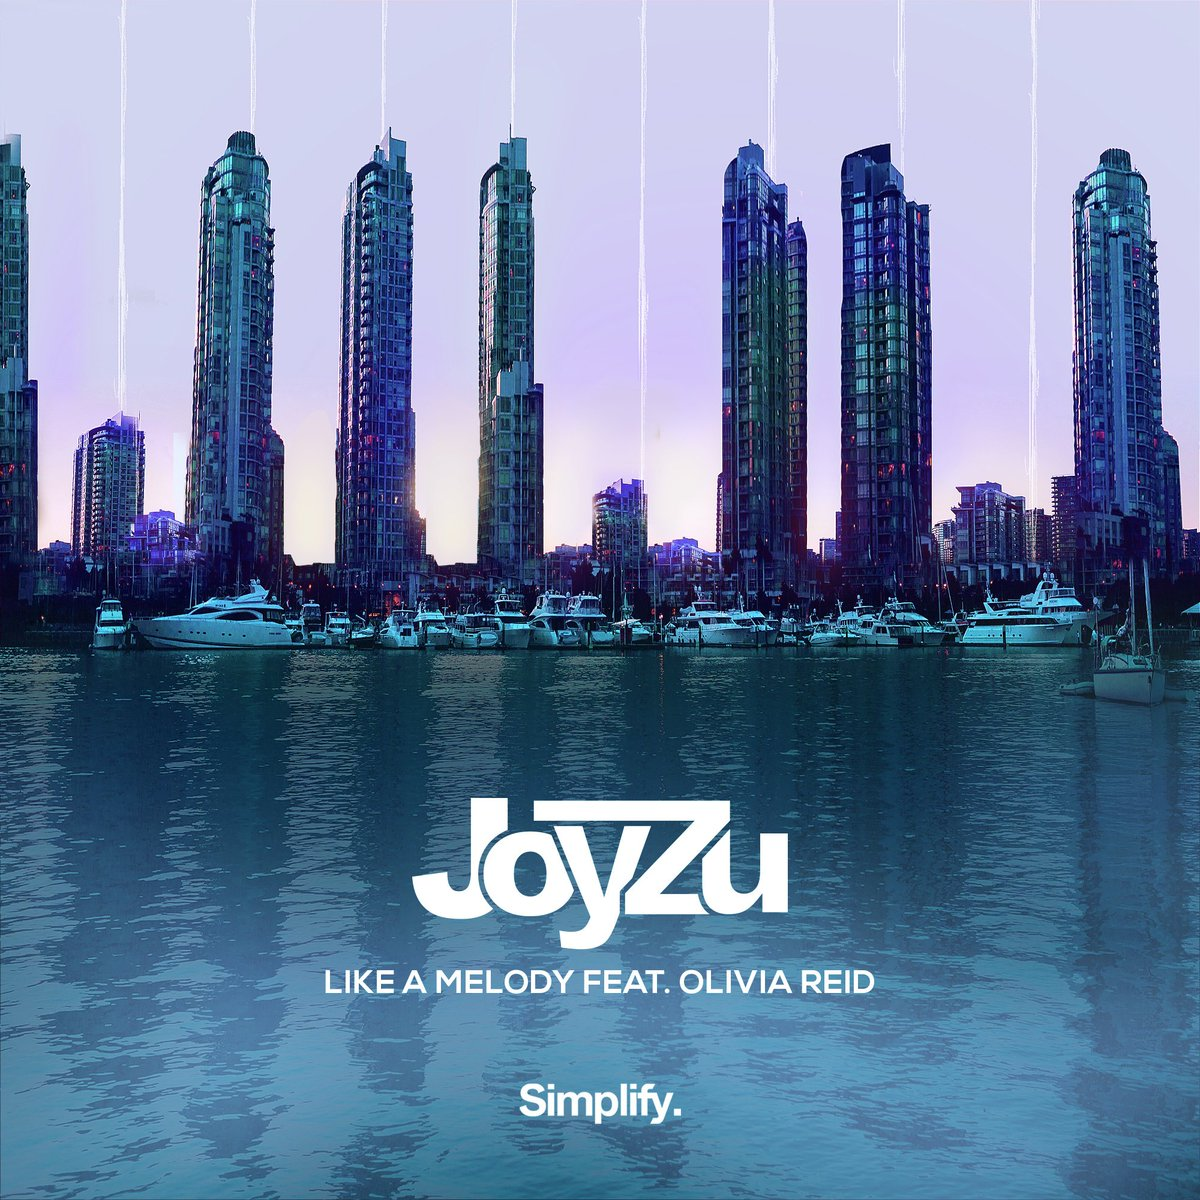 Tomorrow we bring you the debut from @JoyZuMusic!  Like A Melody feat. Olivia Reid https://t.co/D7k8iNpGKx